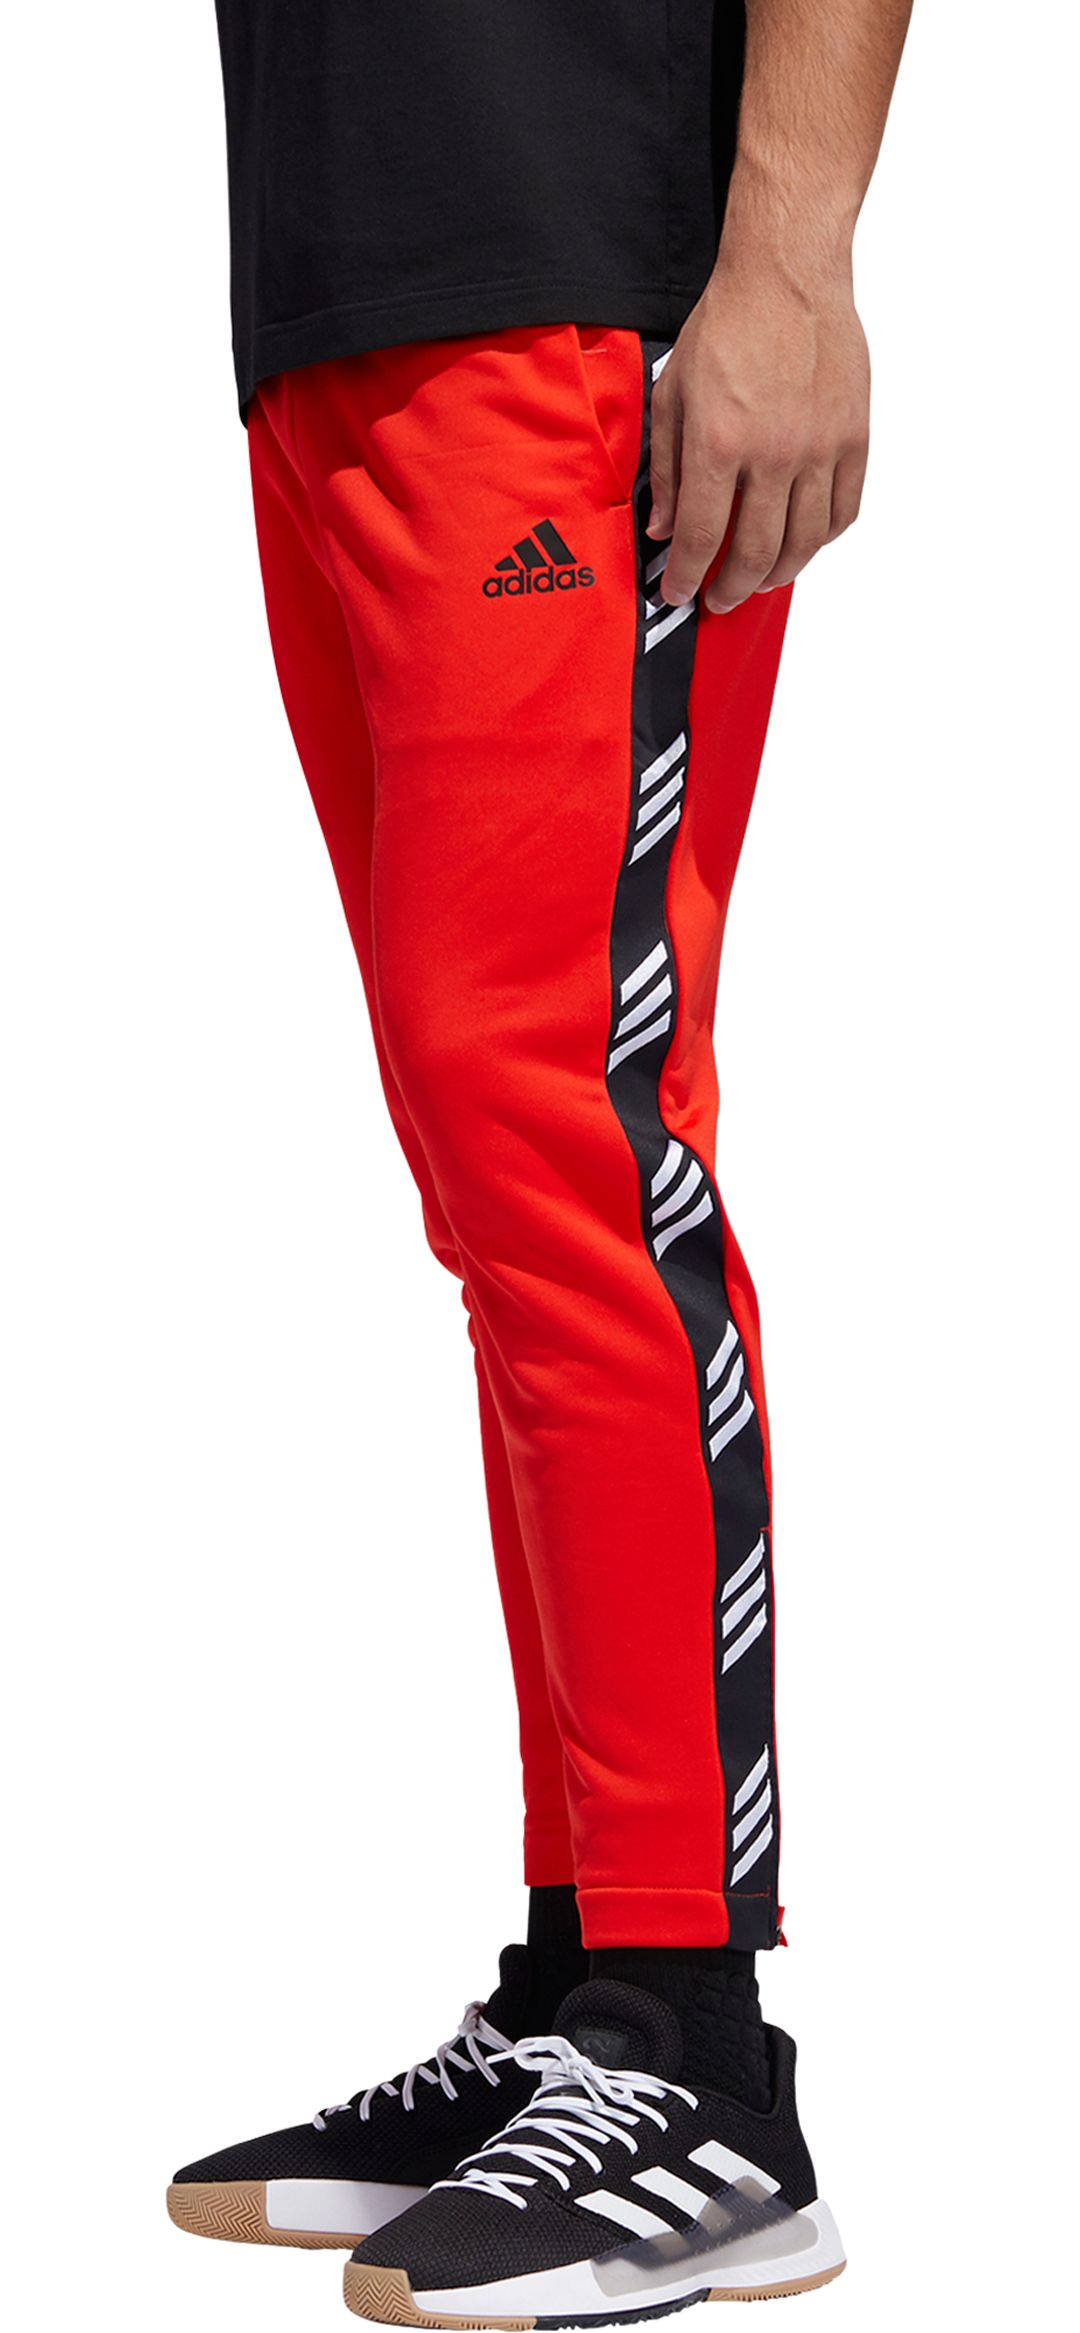 85fa759316 adidas Men's Pro Madness Basketball Track Pants | DICK'S Sporting Goods